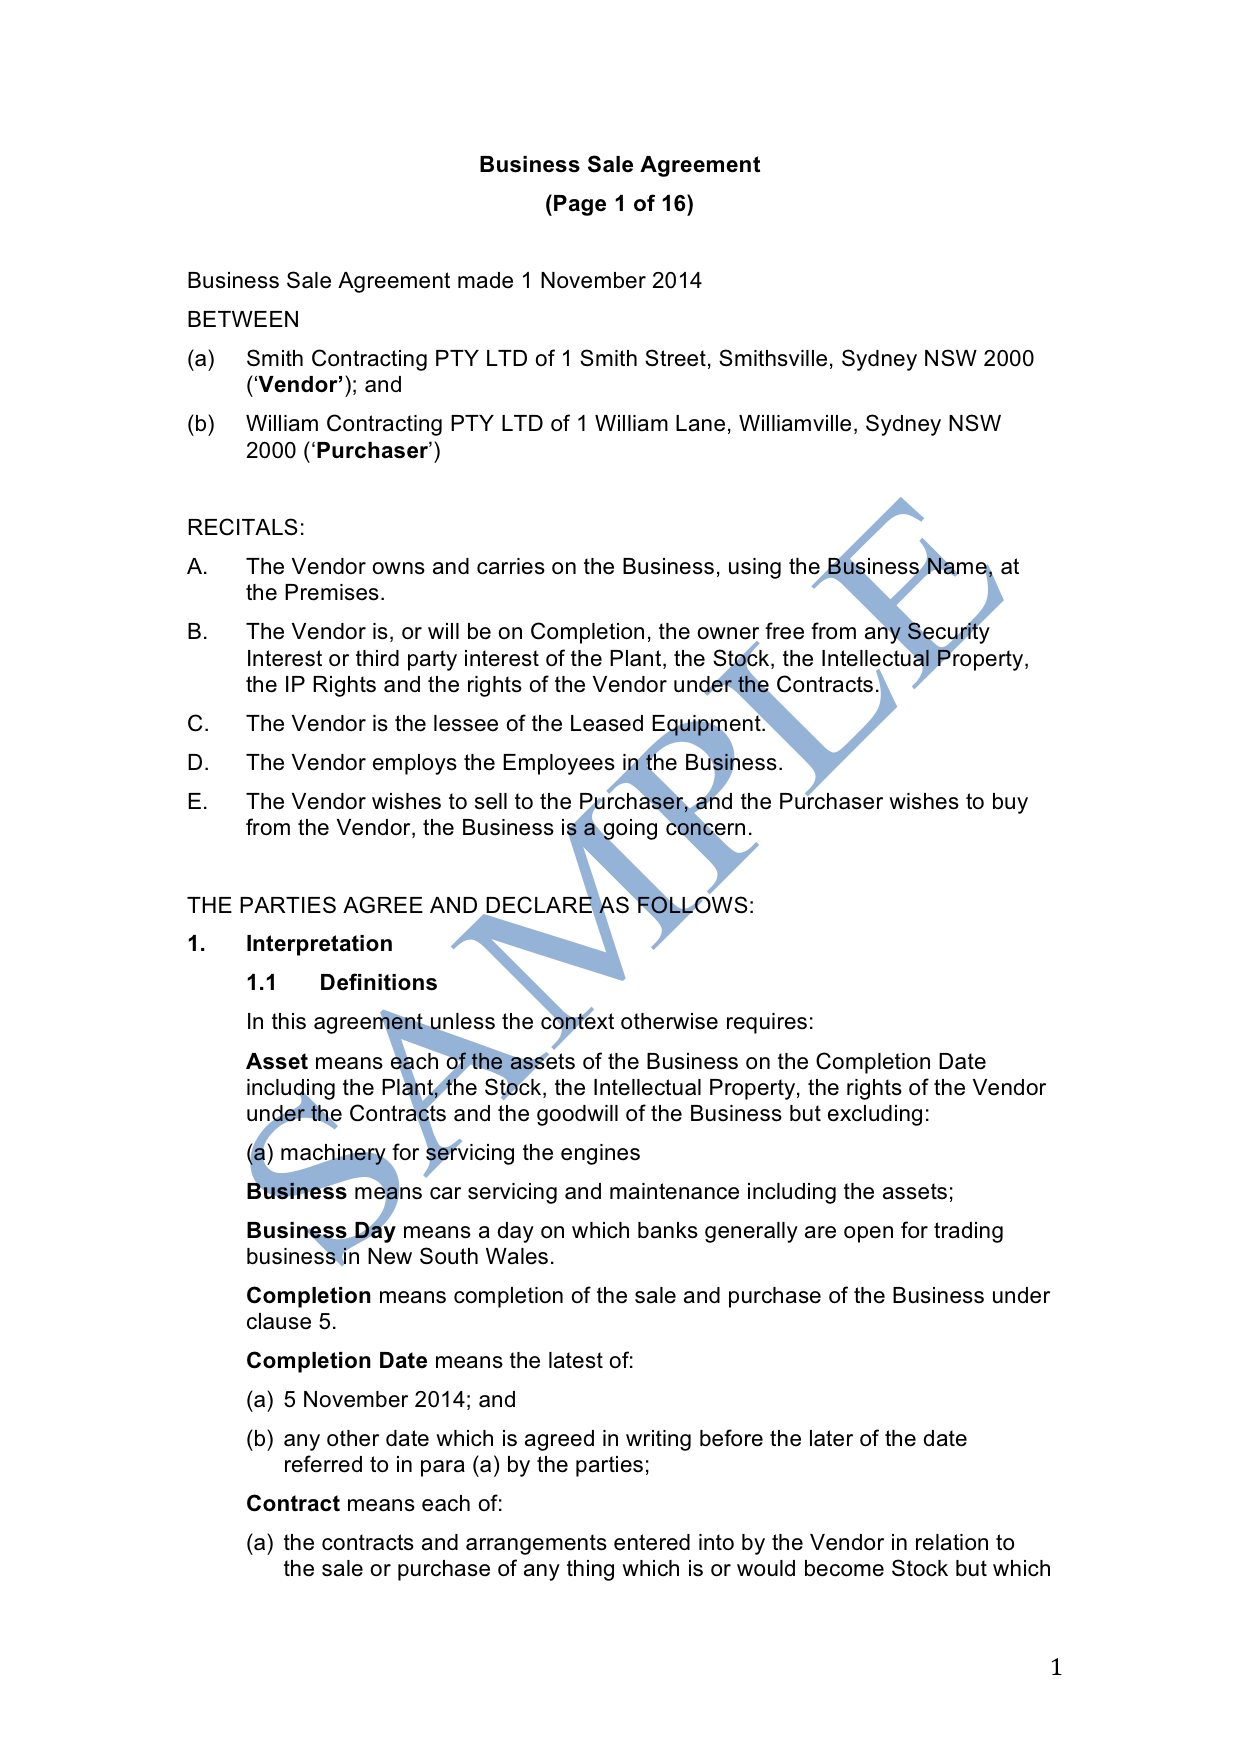 Business Sale Agreement Sample LawPath – Sample Sales Agreement